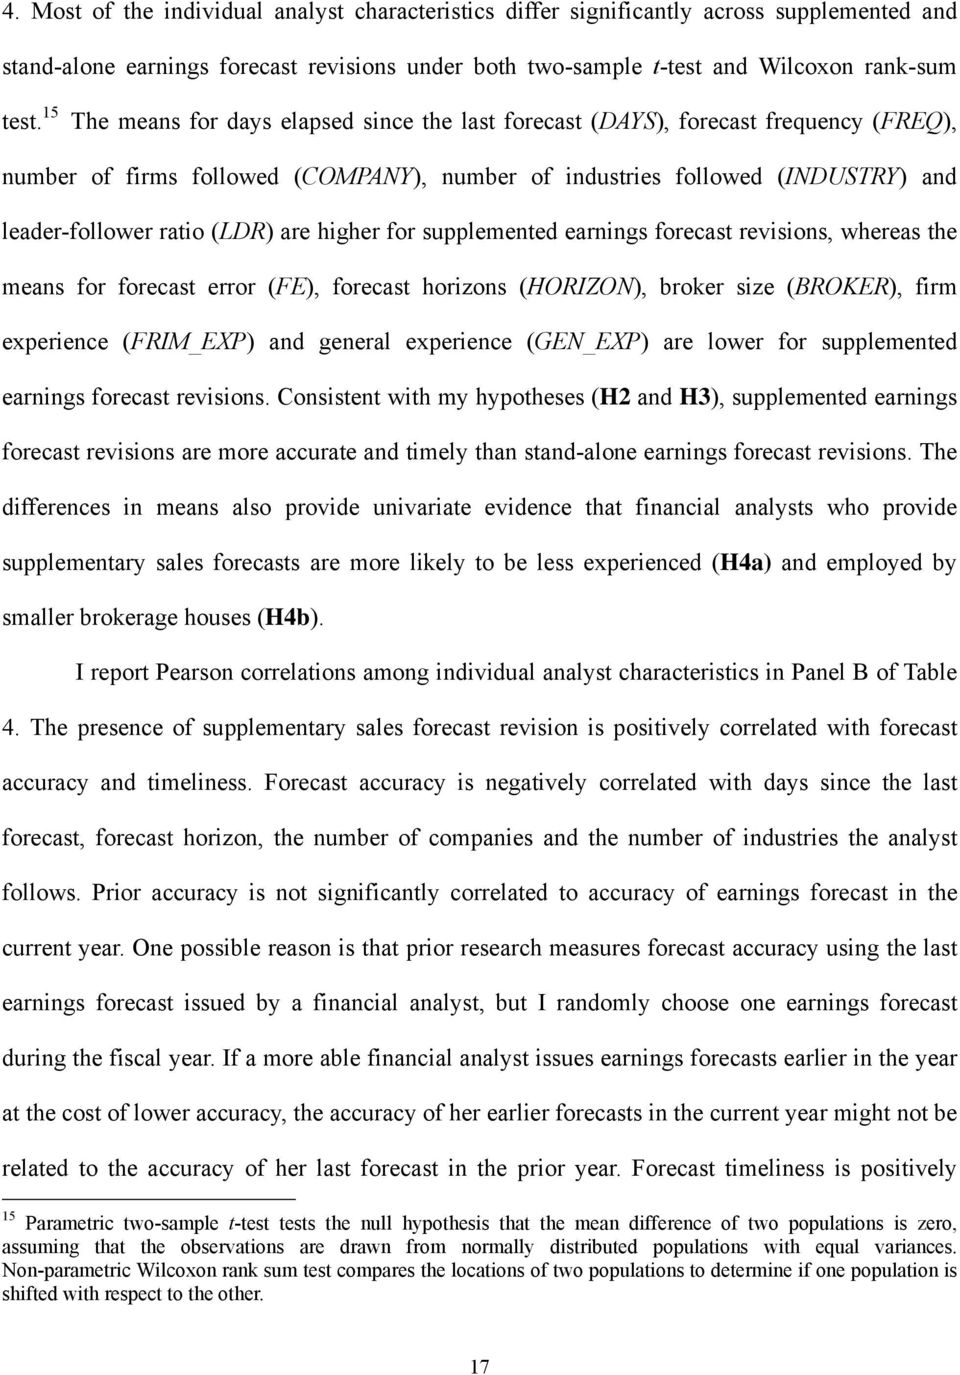 are higher for supplemented earnings forecast revisions, whereas the means for forecast error (FE), forecast horizons (HORIZON), broker size (BROKER), firm experience (FRIM_EXP) and general